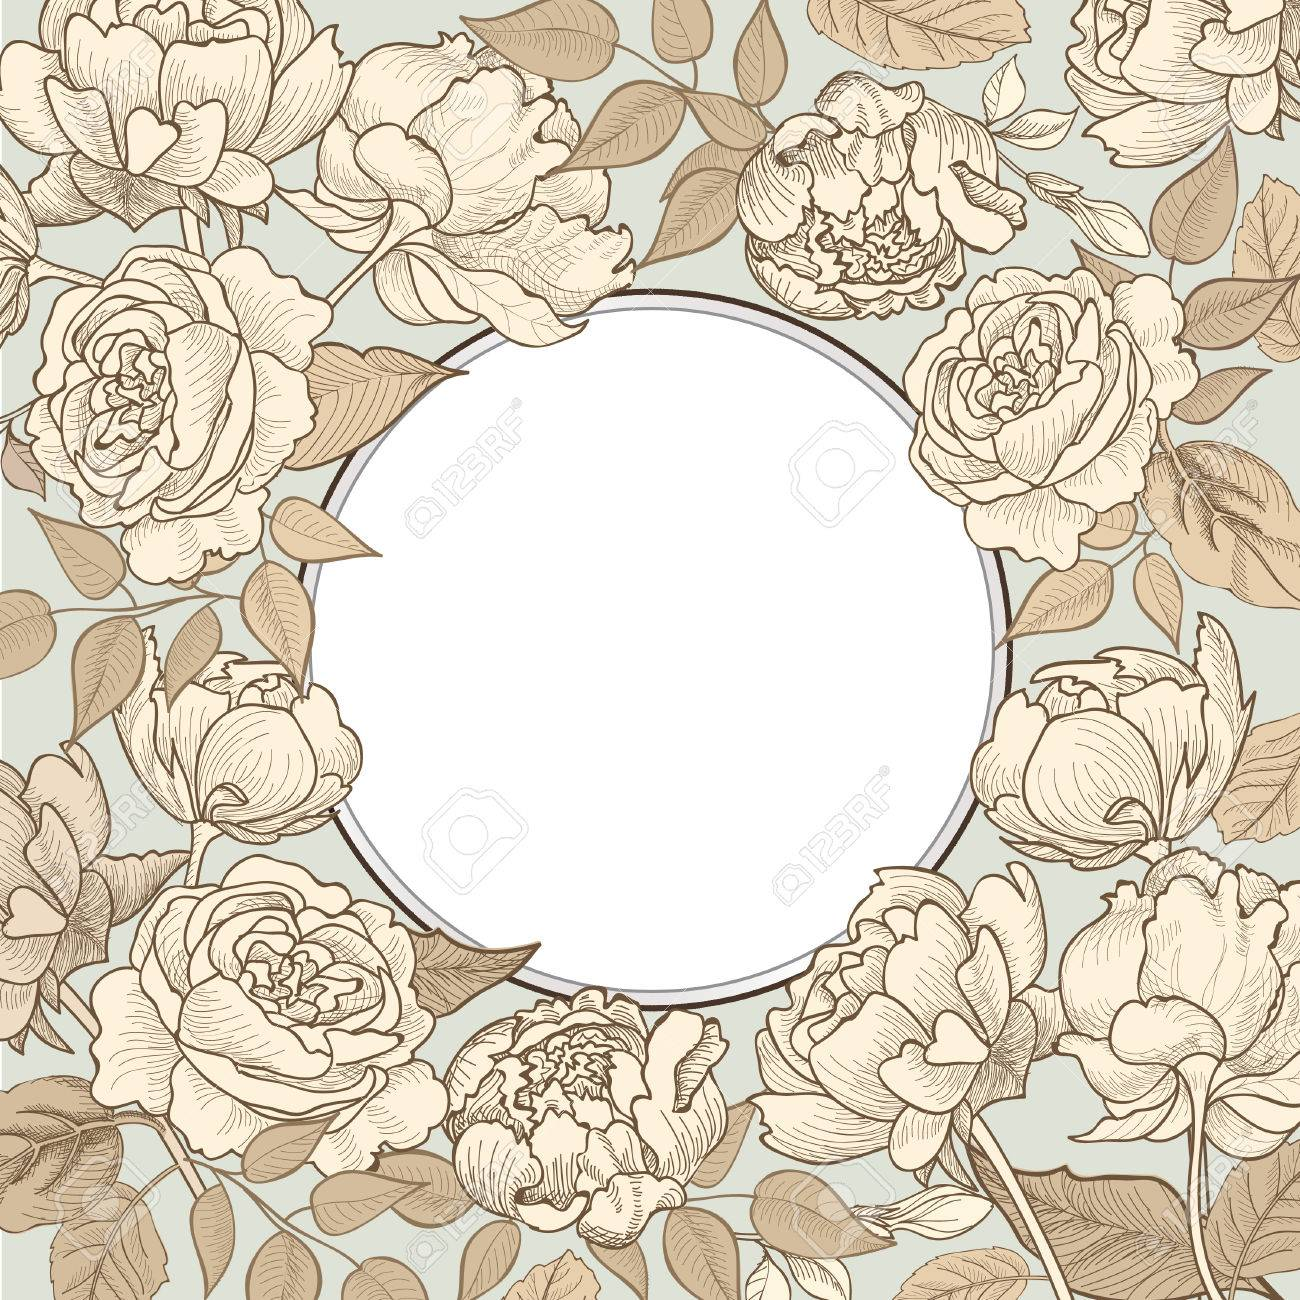 Floral vintage background - Floral Vintage Background In Vintage Victorian Style Stock Vector 35274653